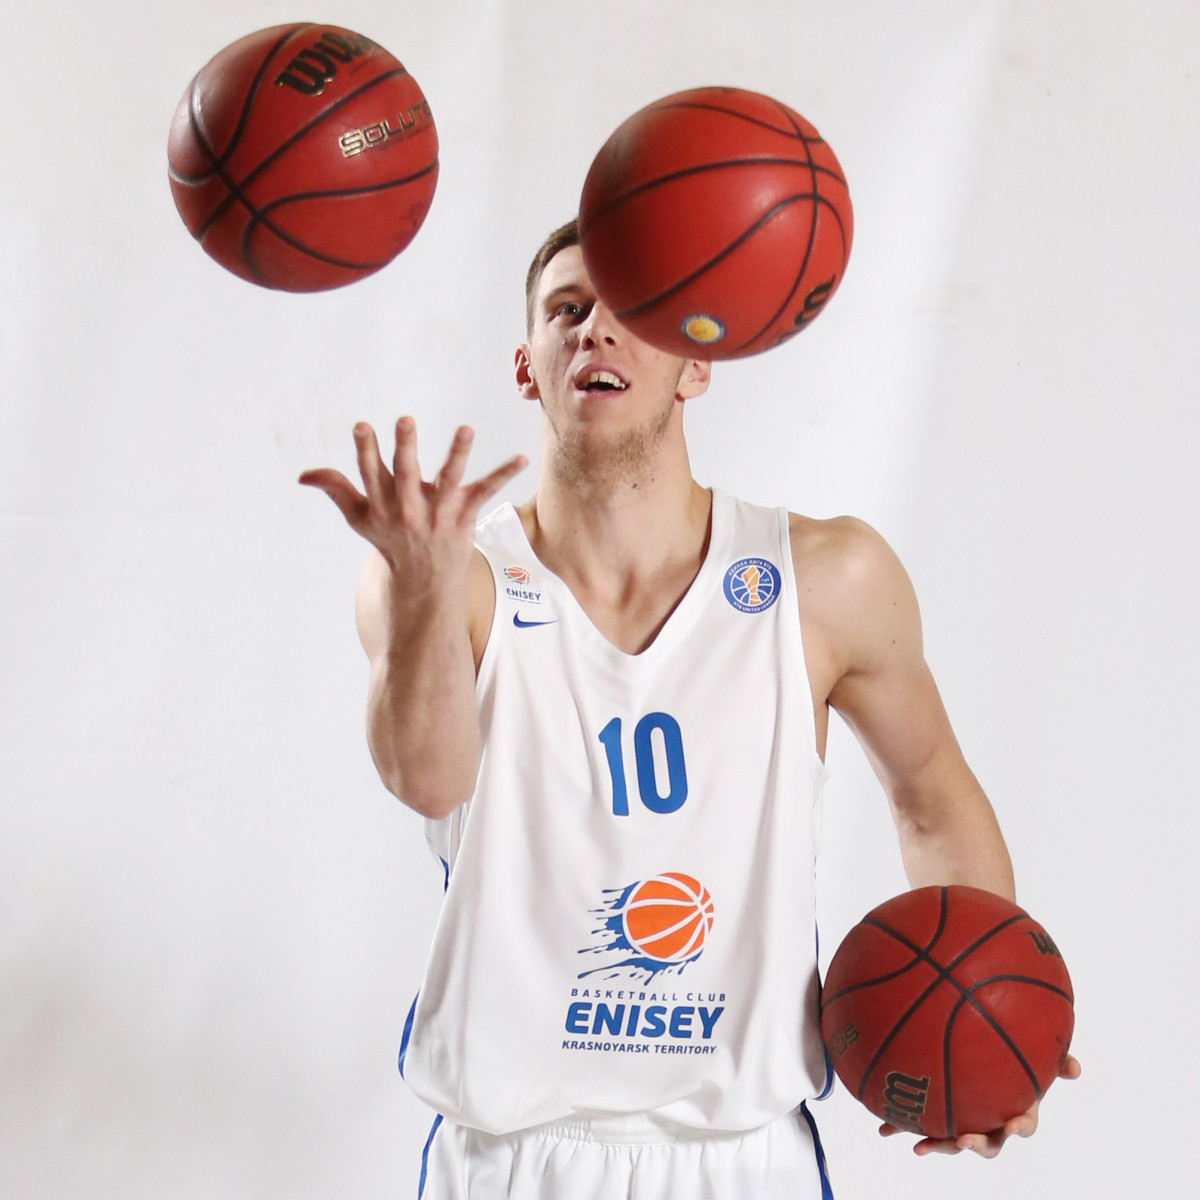 Photo of Vitali Liutych, 2017-2018 season